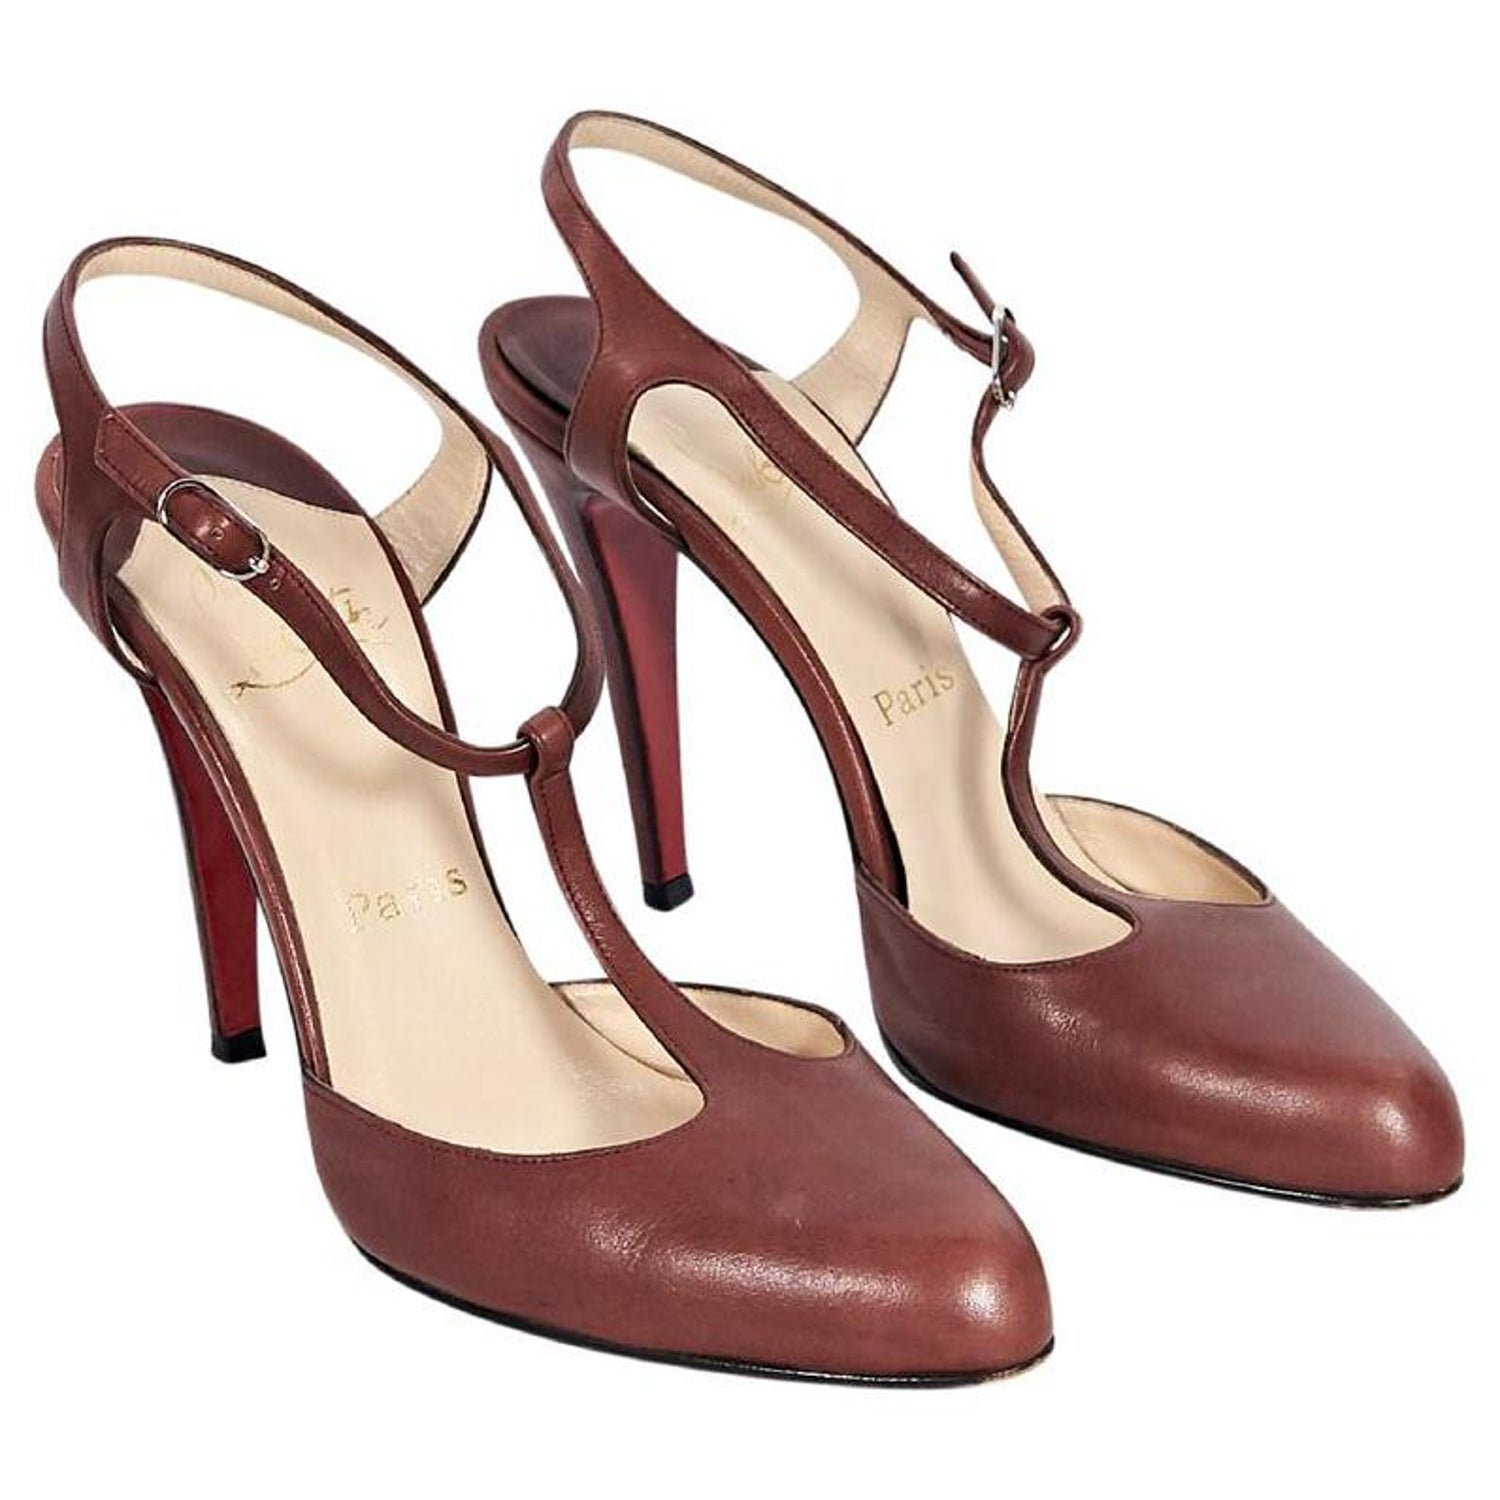 479c456ce122 Brown Christian Louboutin T-Strap Leather Pumps at 1stdibs